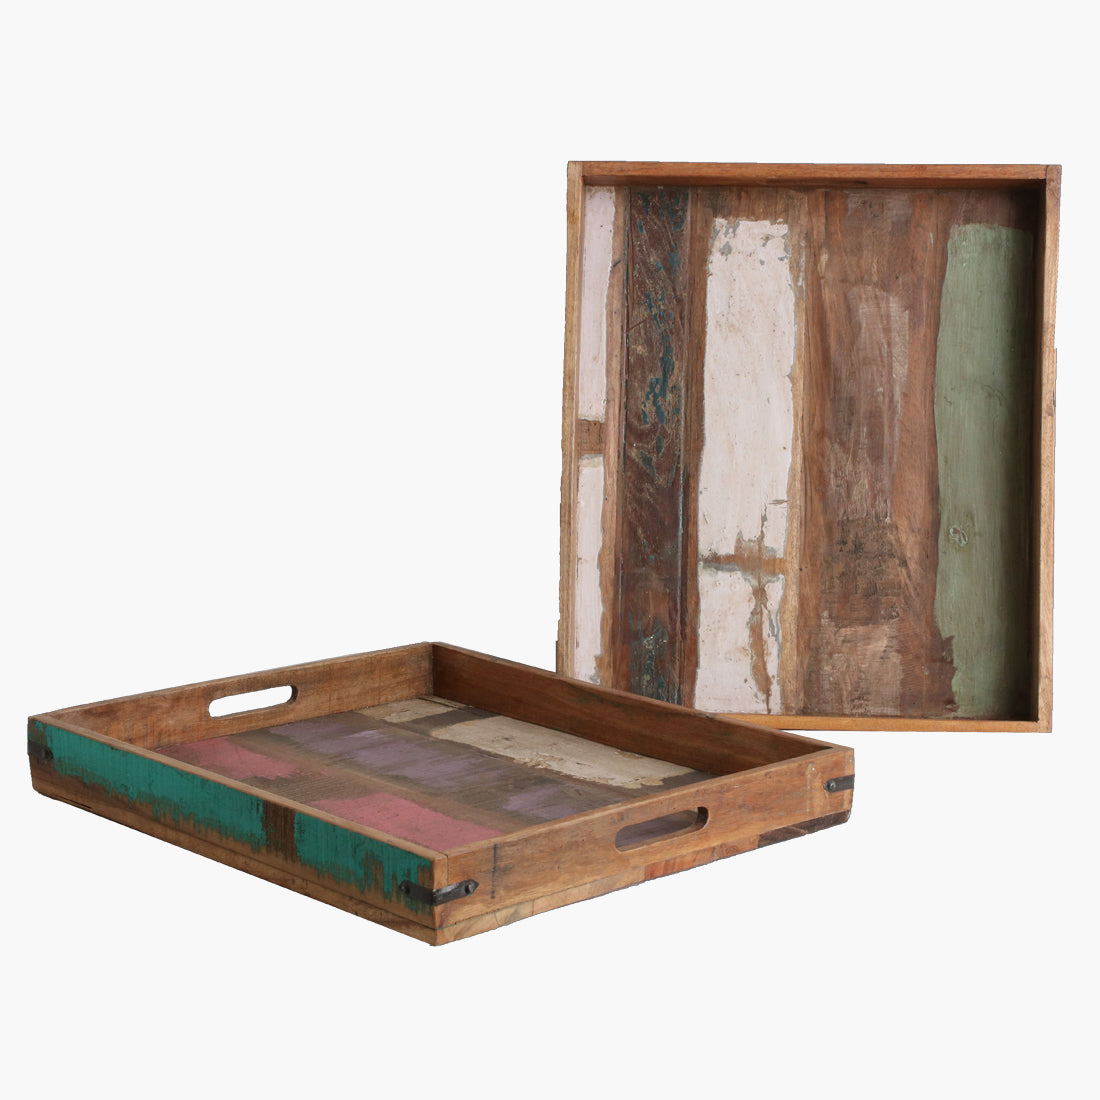 Scrapwood serving tray upright edge